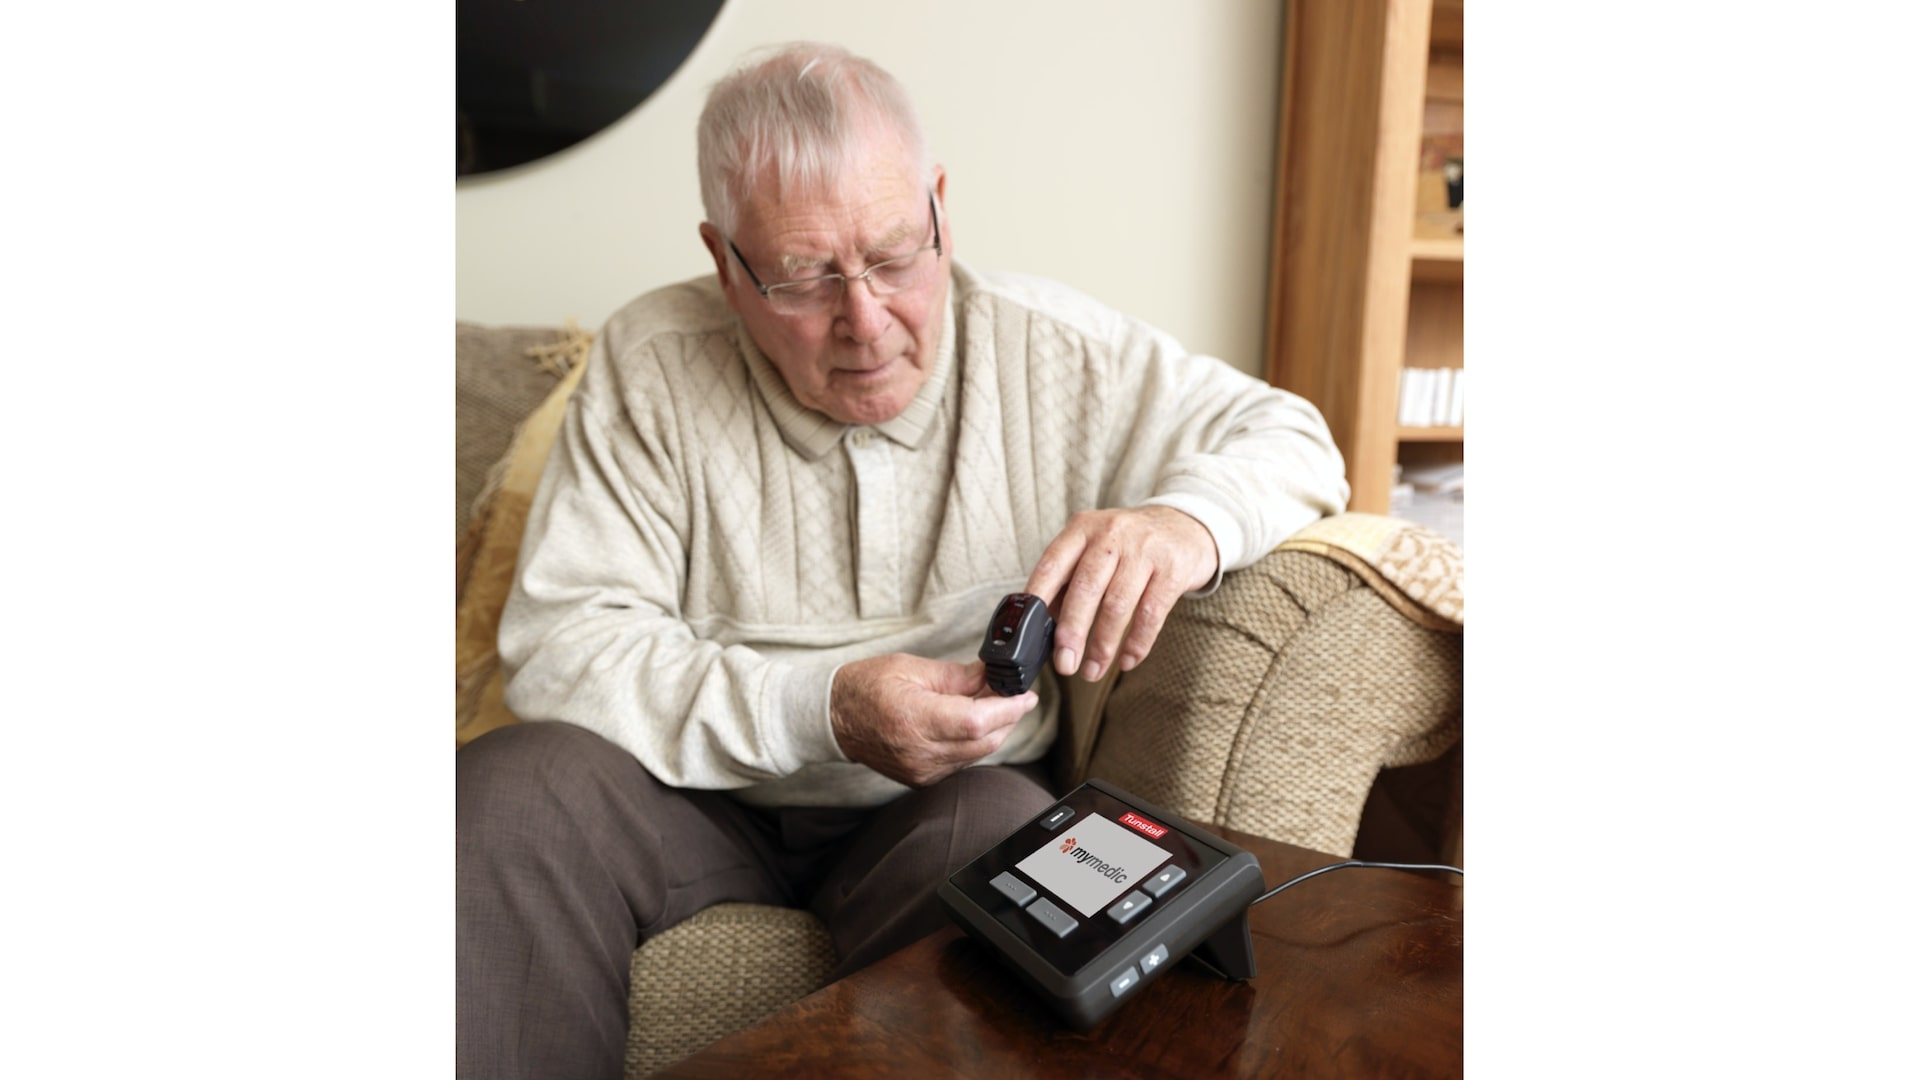 A senior uses a pulse oximeter. He is sitting on a couch at home.